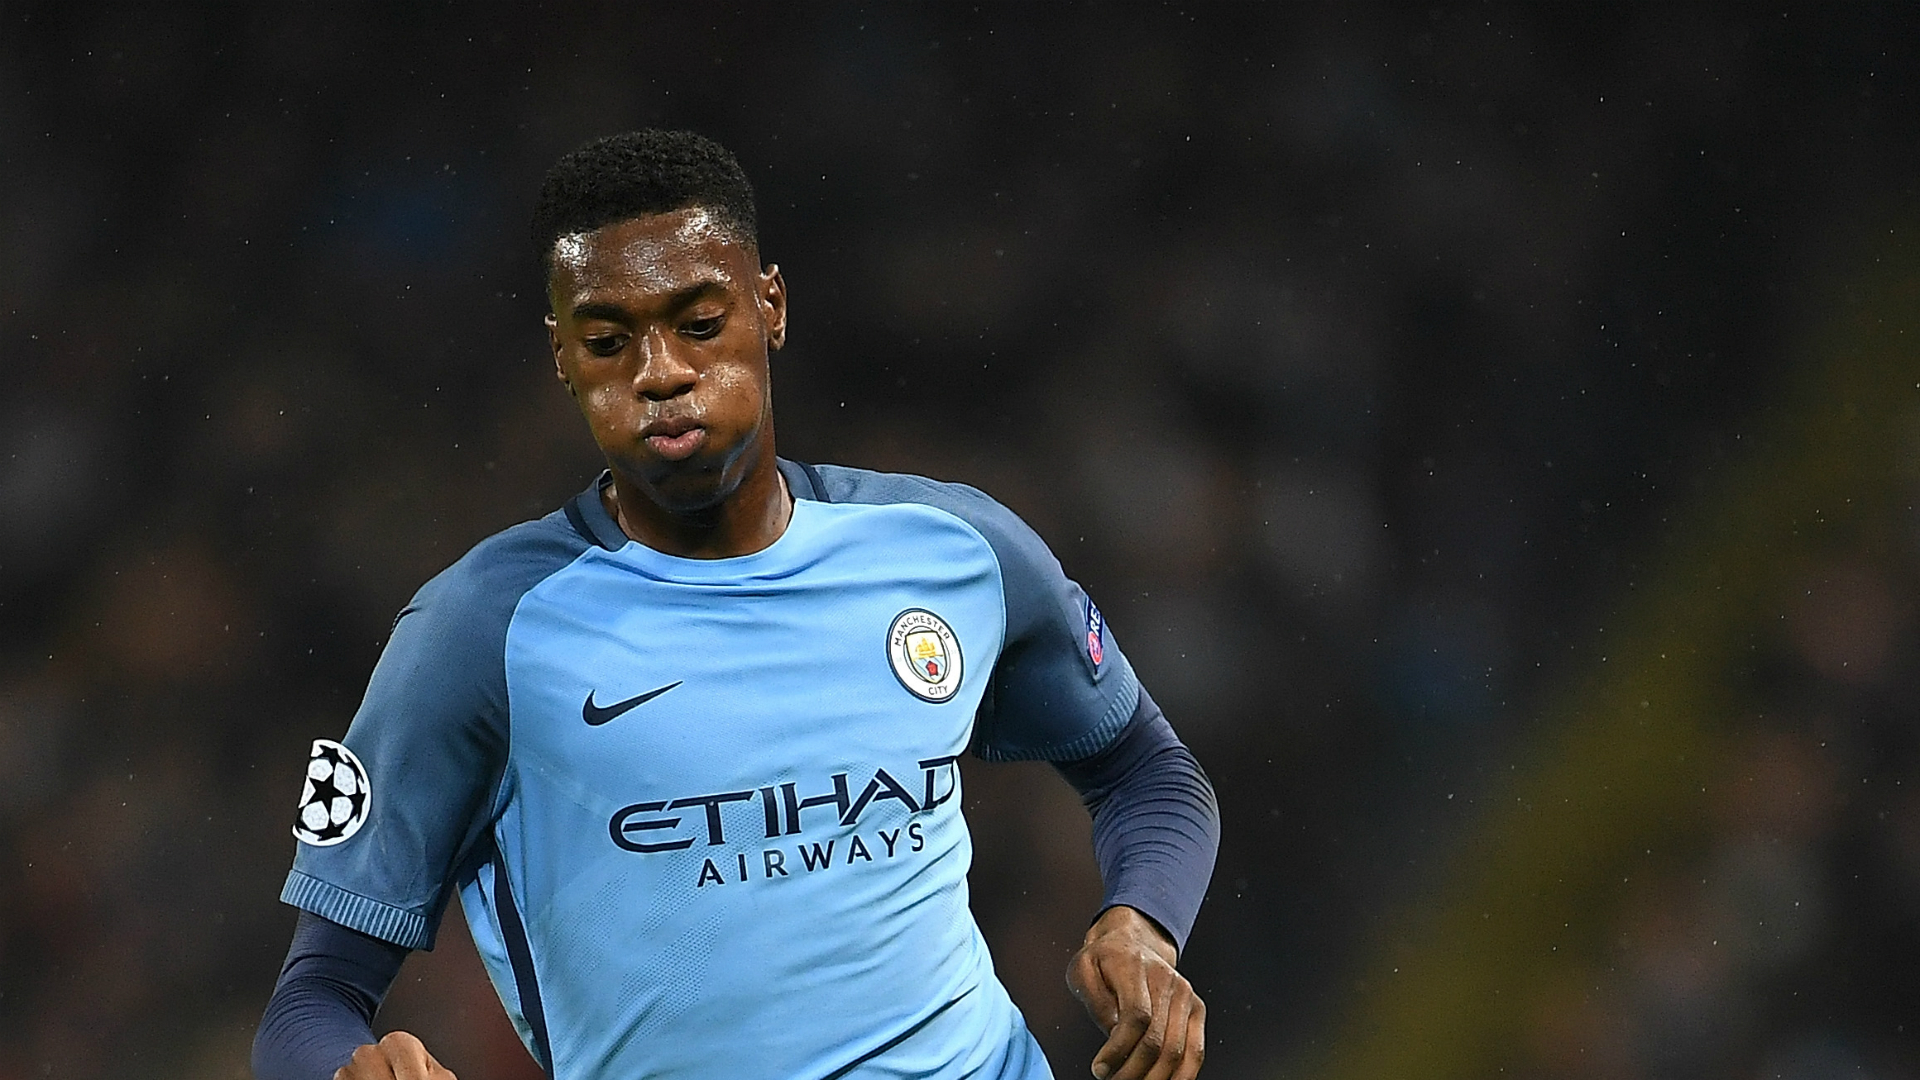 EXTRA TIME: Tosin Adarabioyo stars in Manchester City's Christmas campaign